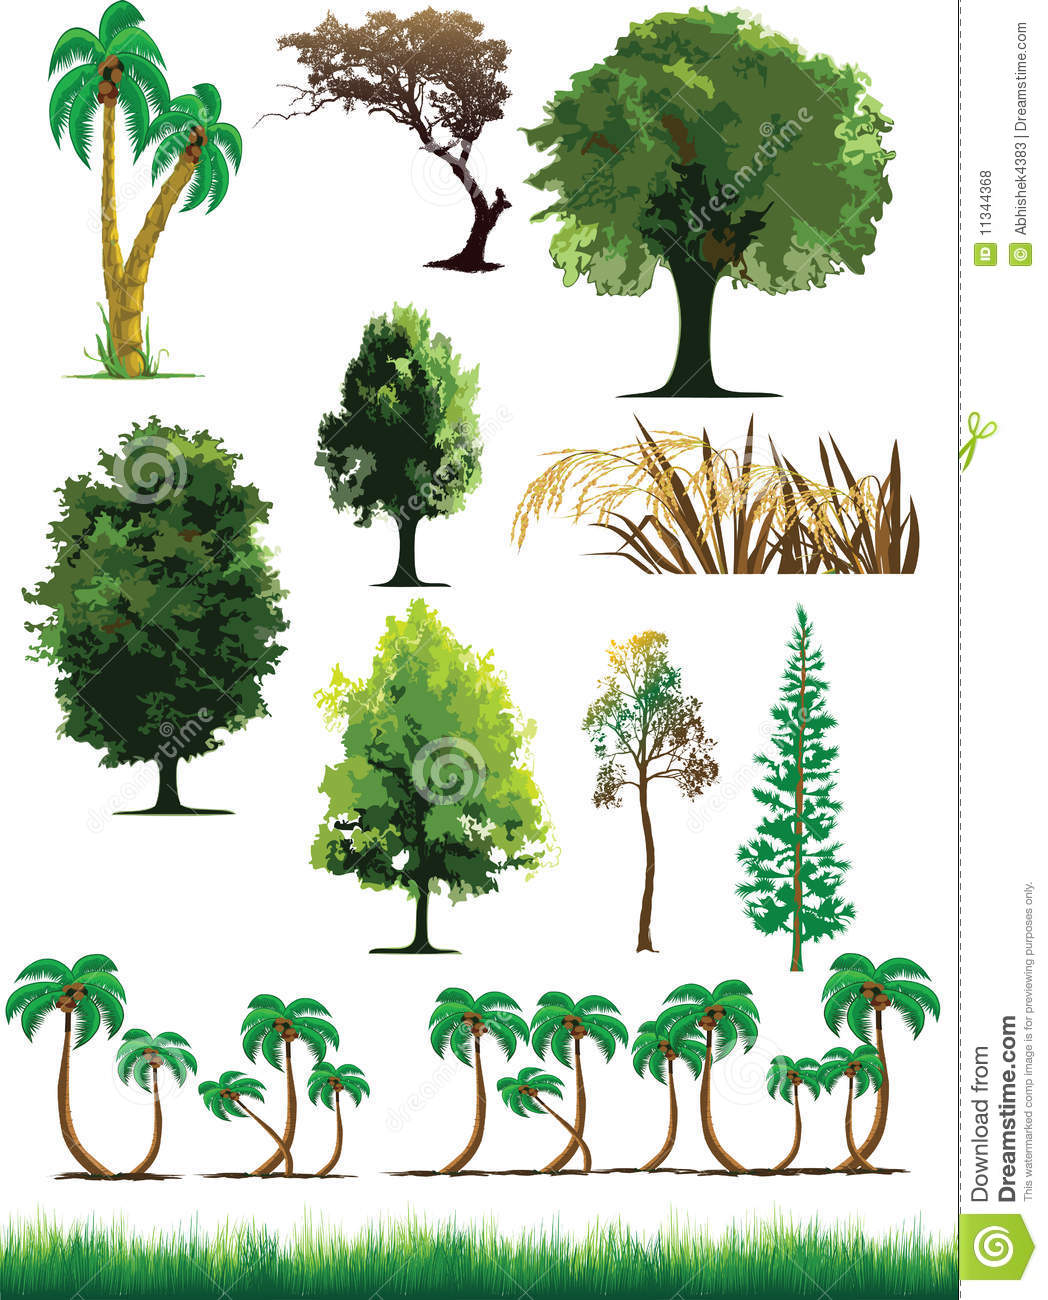 Silhouette view of trees plants grass wildlife royalty for Arbustos de jardin nombres